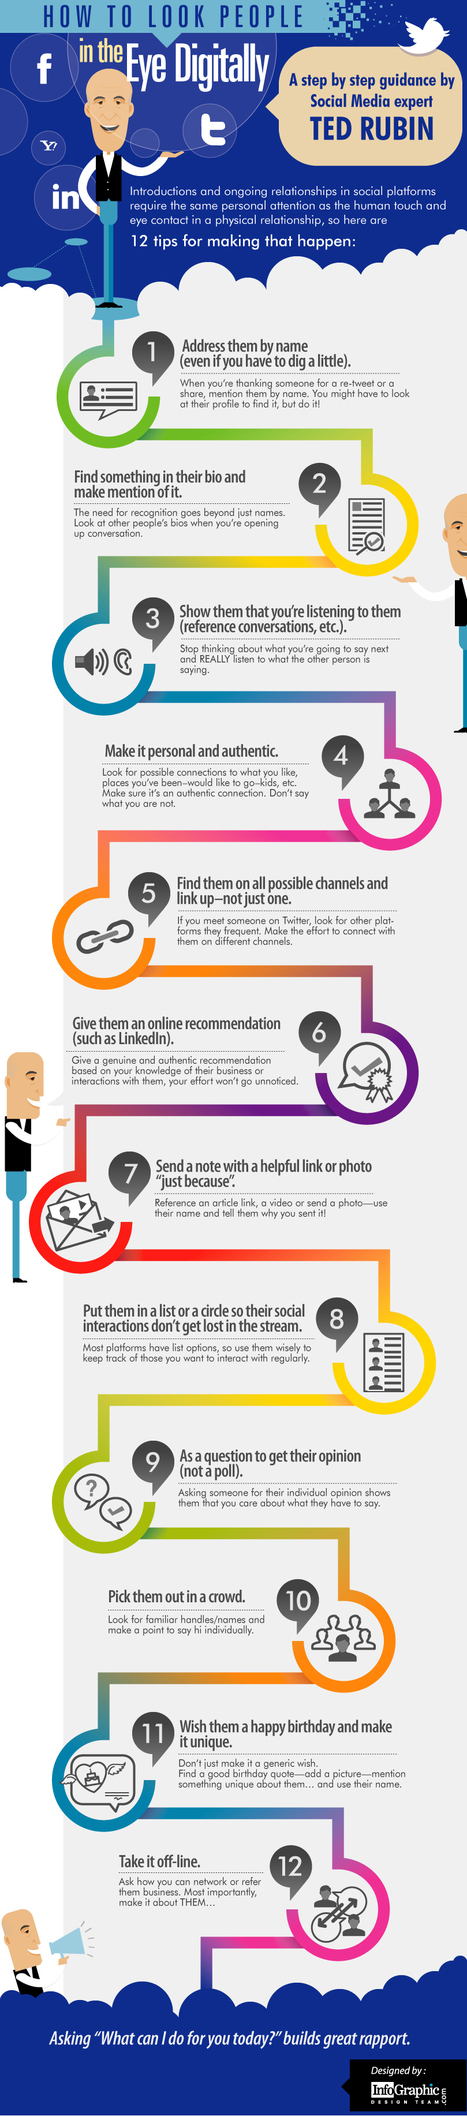 How to Look People in the Eye Digitally - InfoGraphic | Time to Learn | Scoop.it